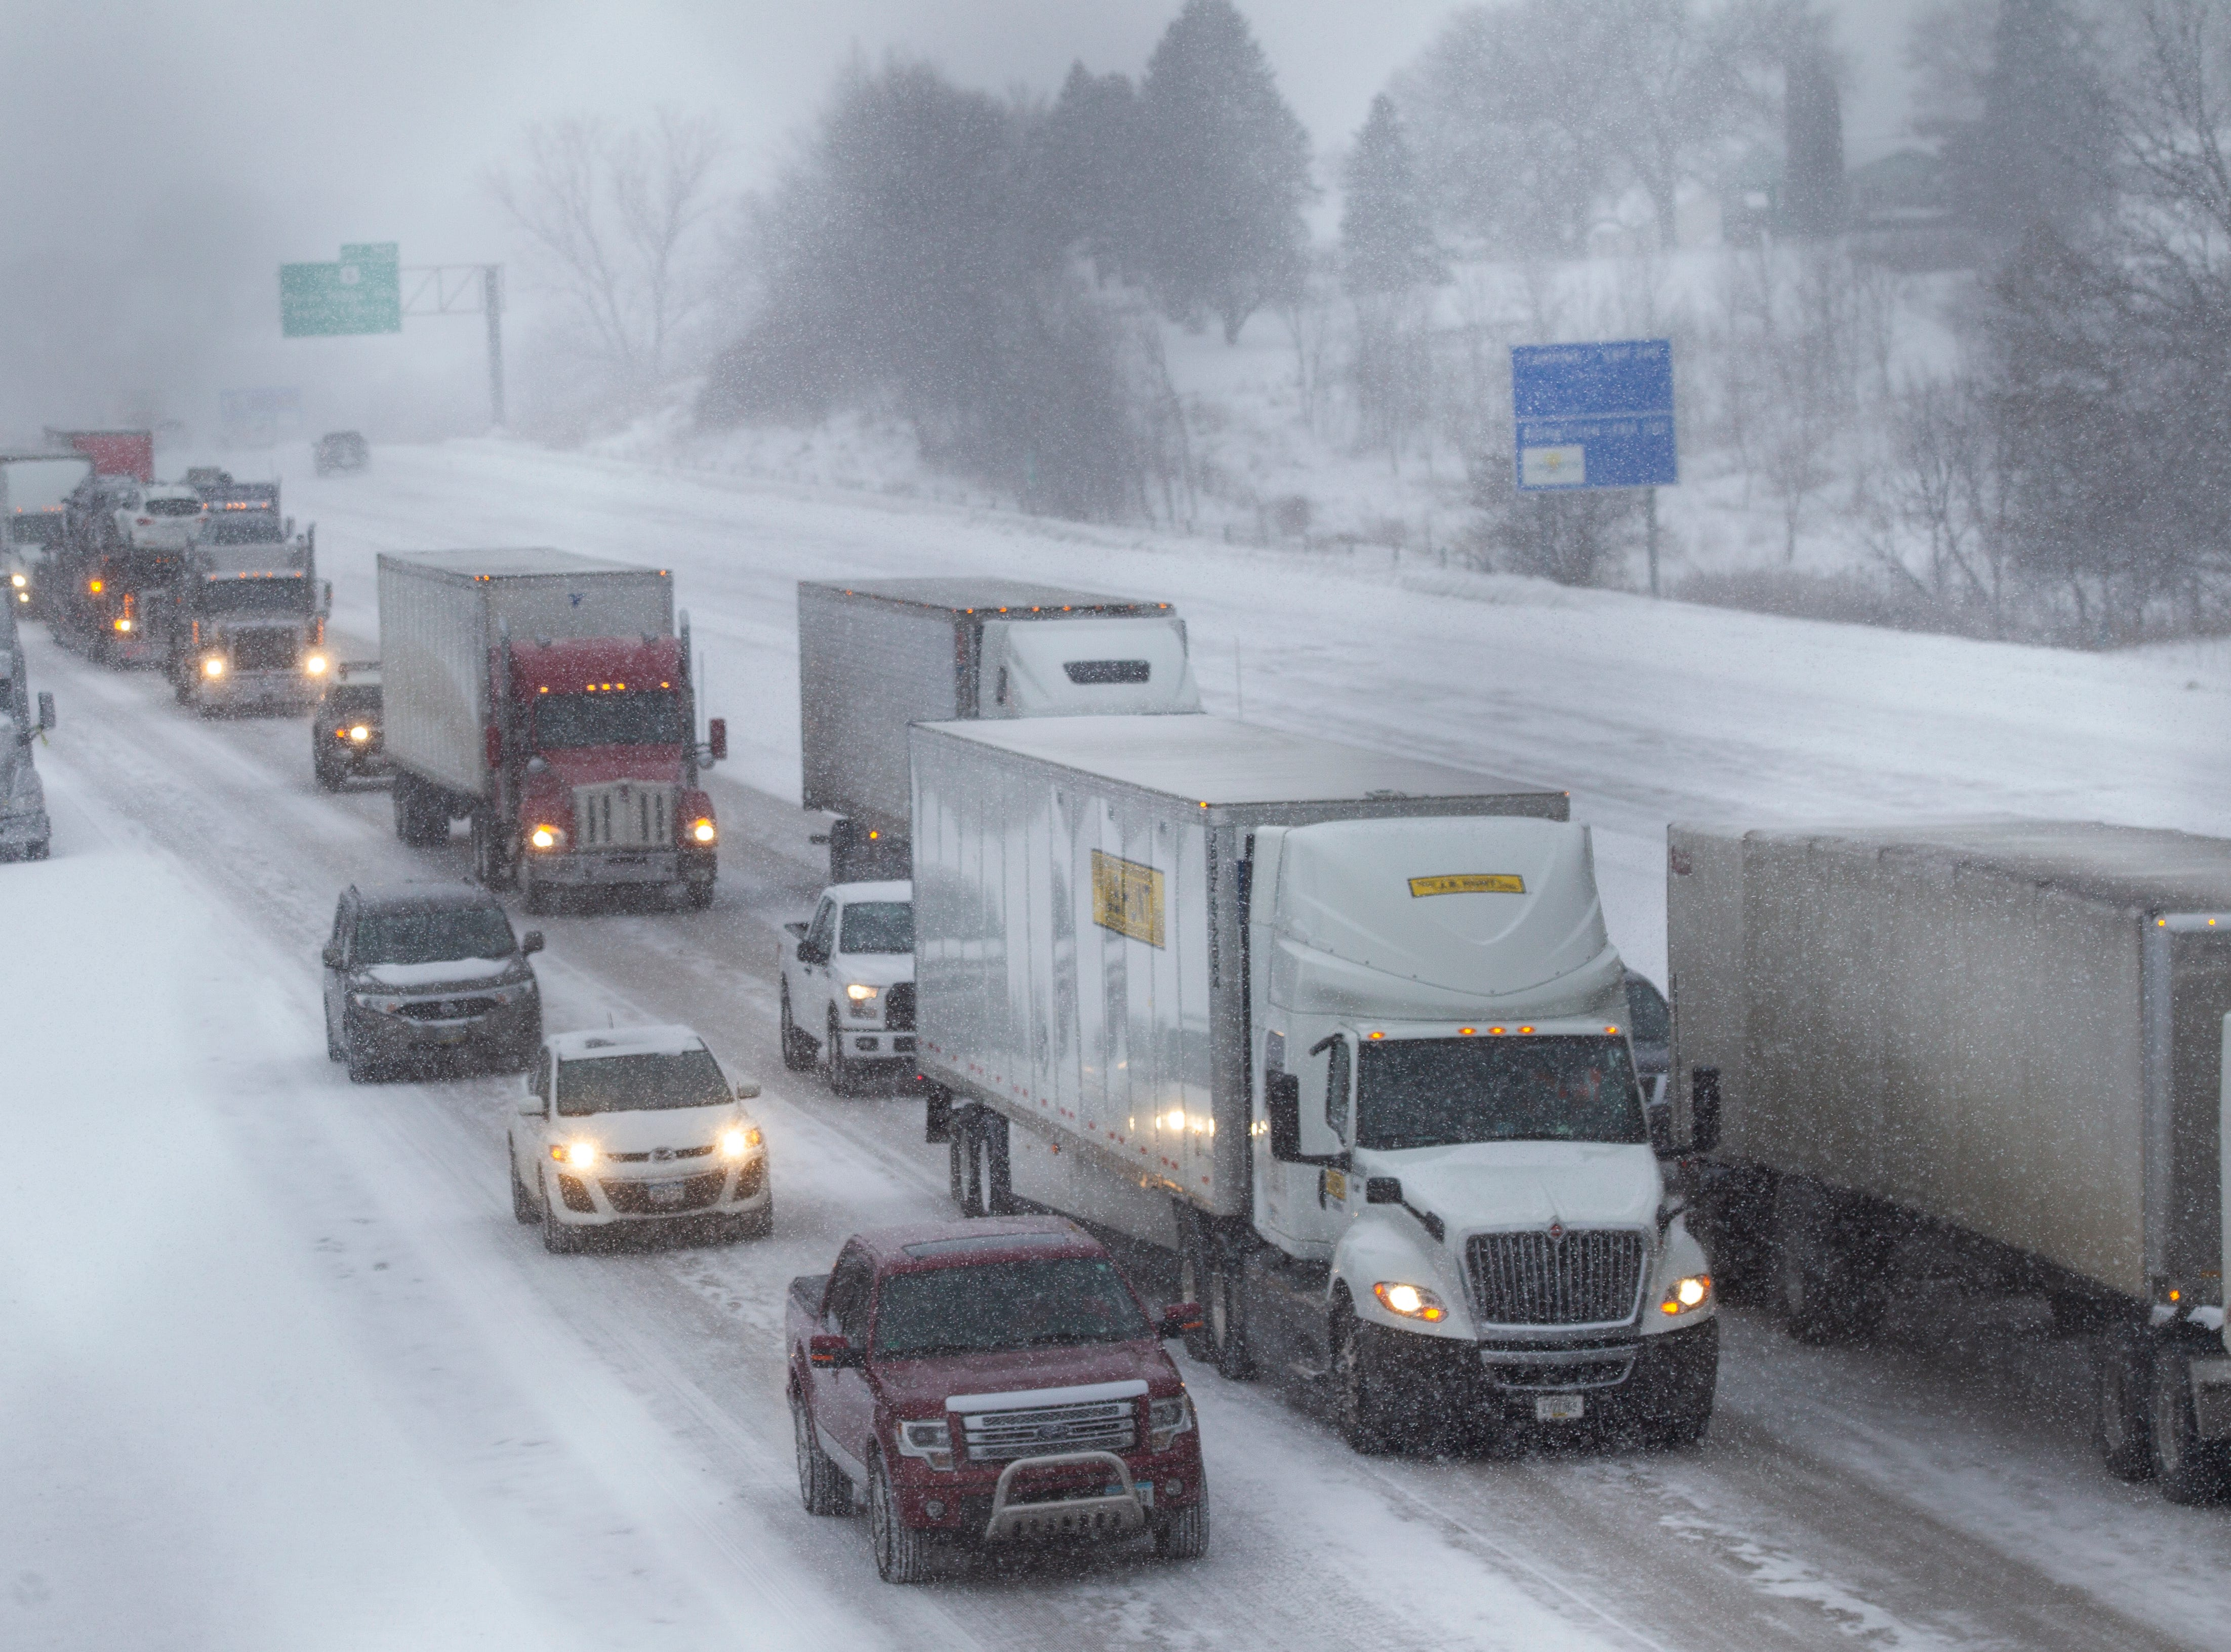 Traffic gets backed eastbound up as snow falls on Thursday, Jan. 31, 2019, along Interstate 80 between exits 242 at 1st Avenue and exit 240 for IA 965 in Coralville, Iowa.